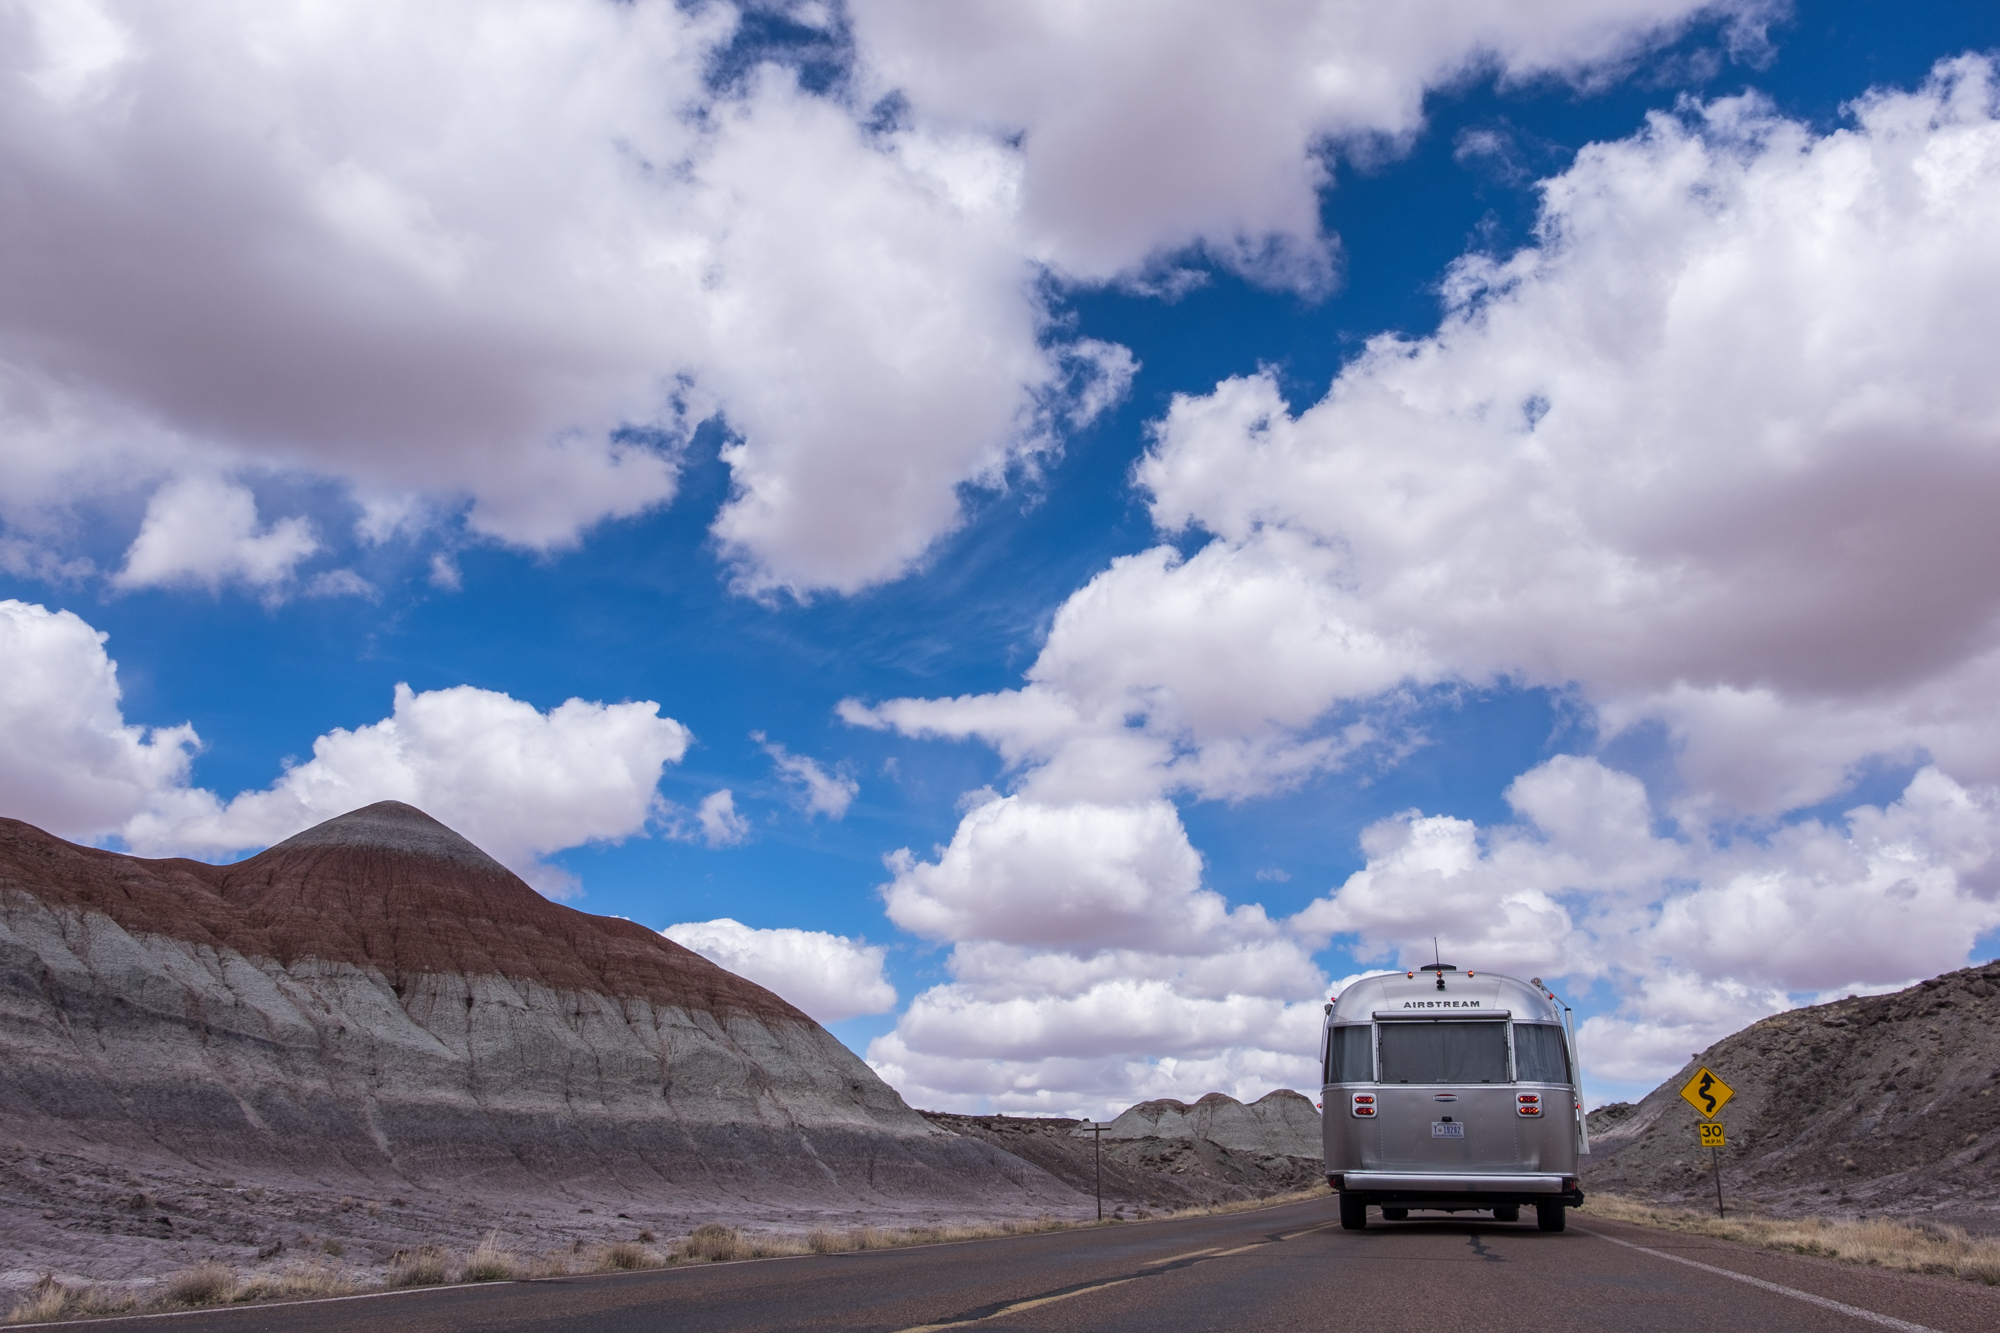 Wally in the clouds in Petrified Forest National Park in Arizona.